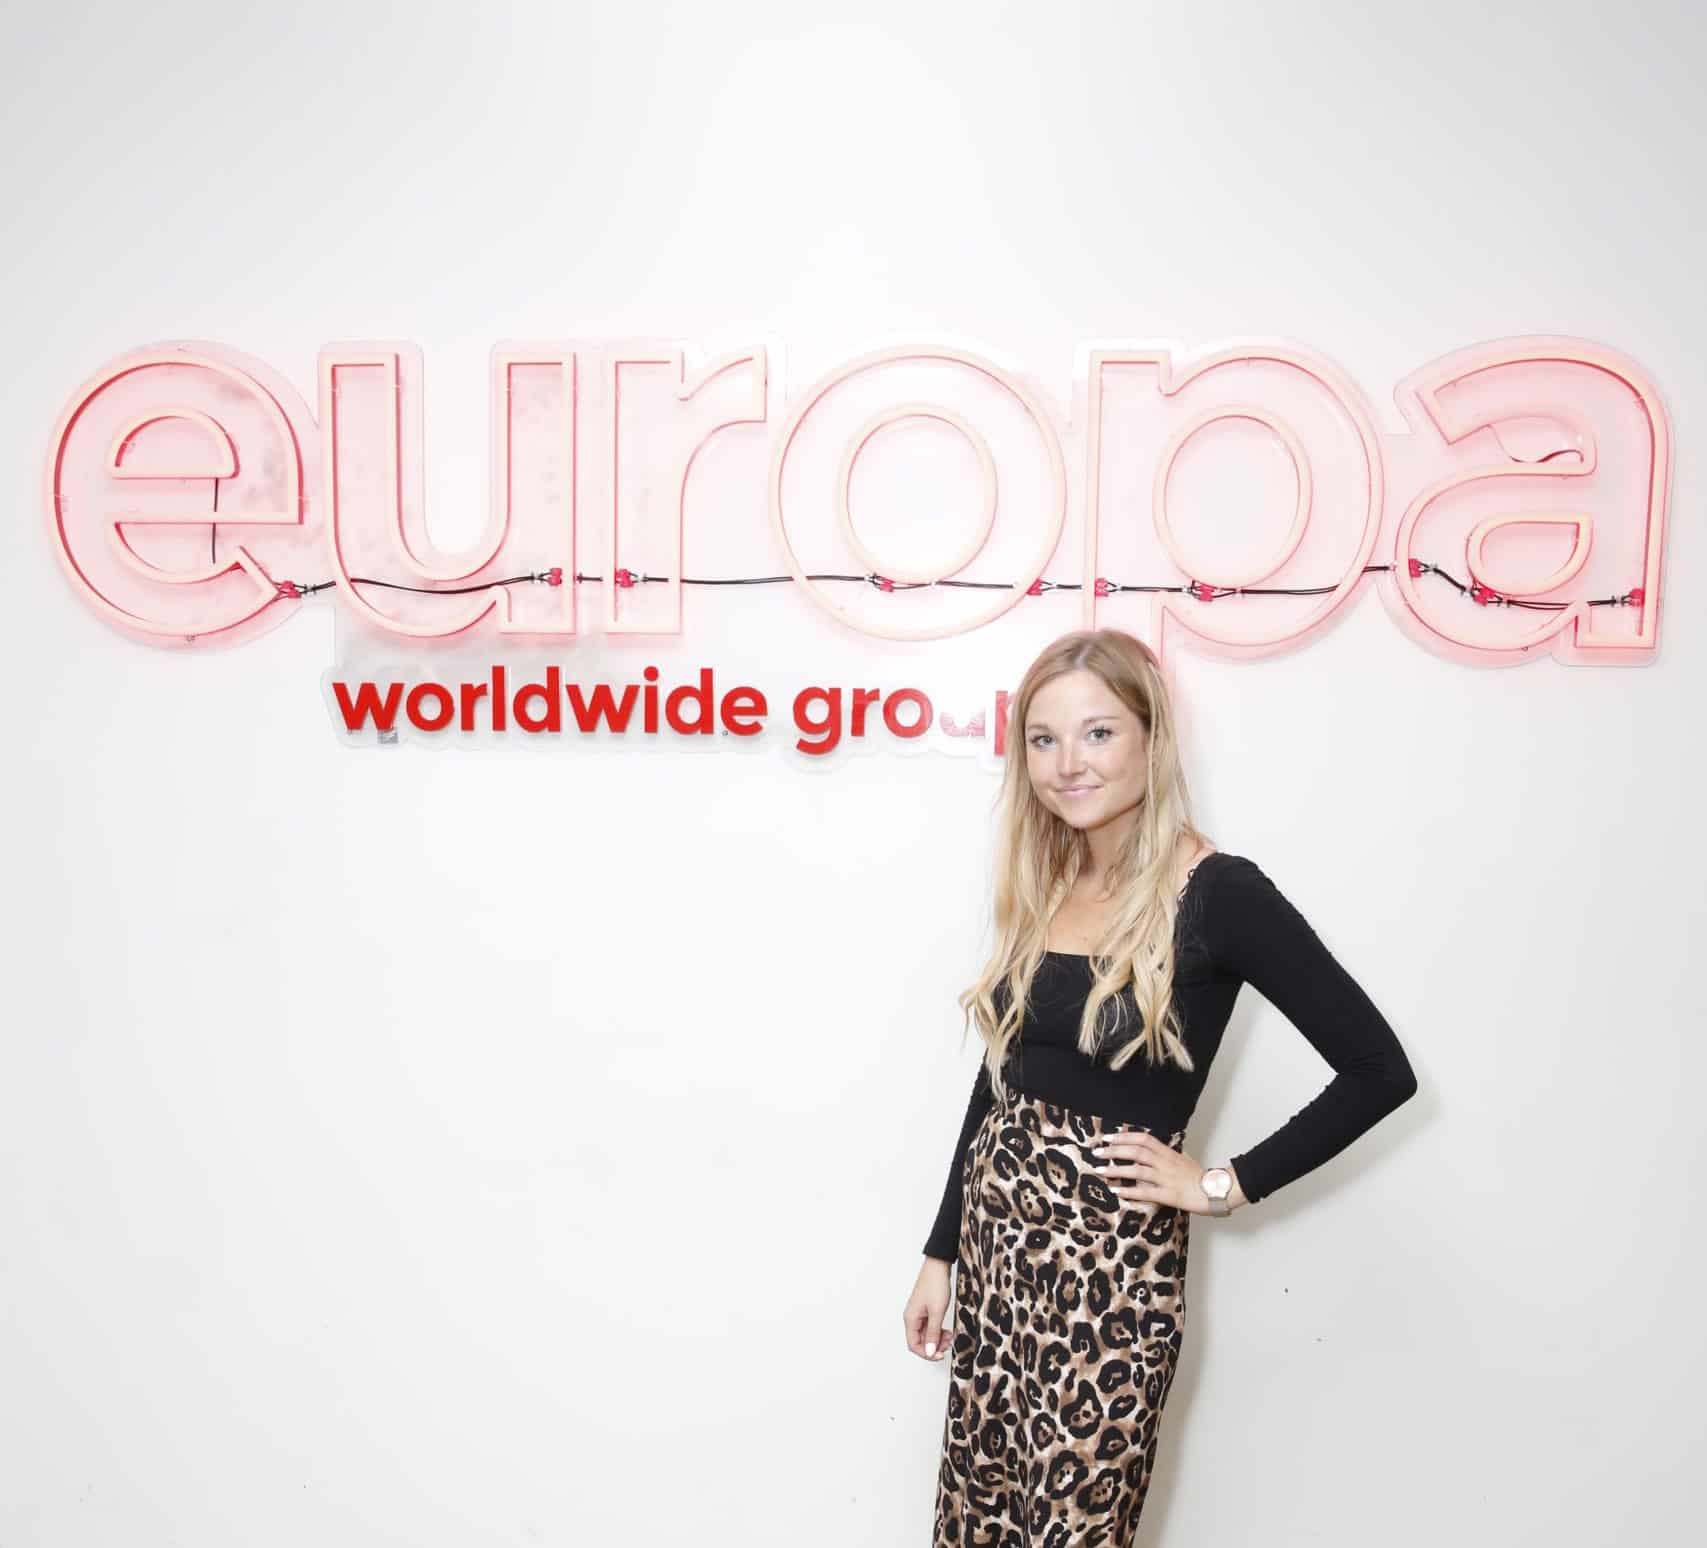 Lana Jay Early Careers Talent Manager At Europa Worldwide Group